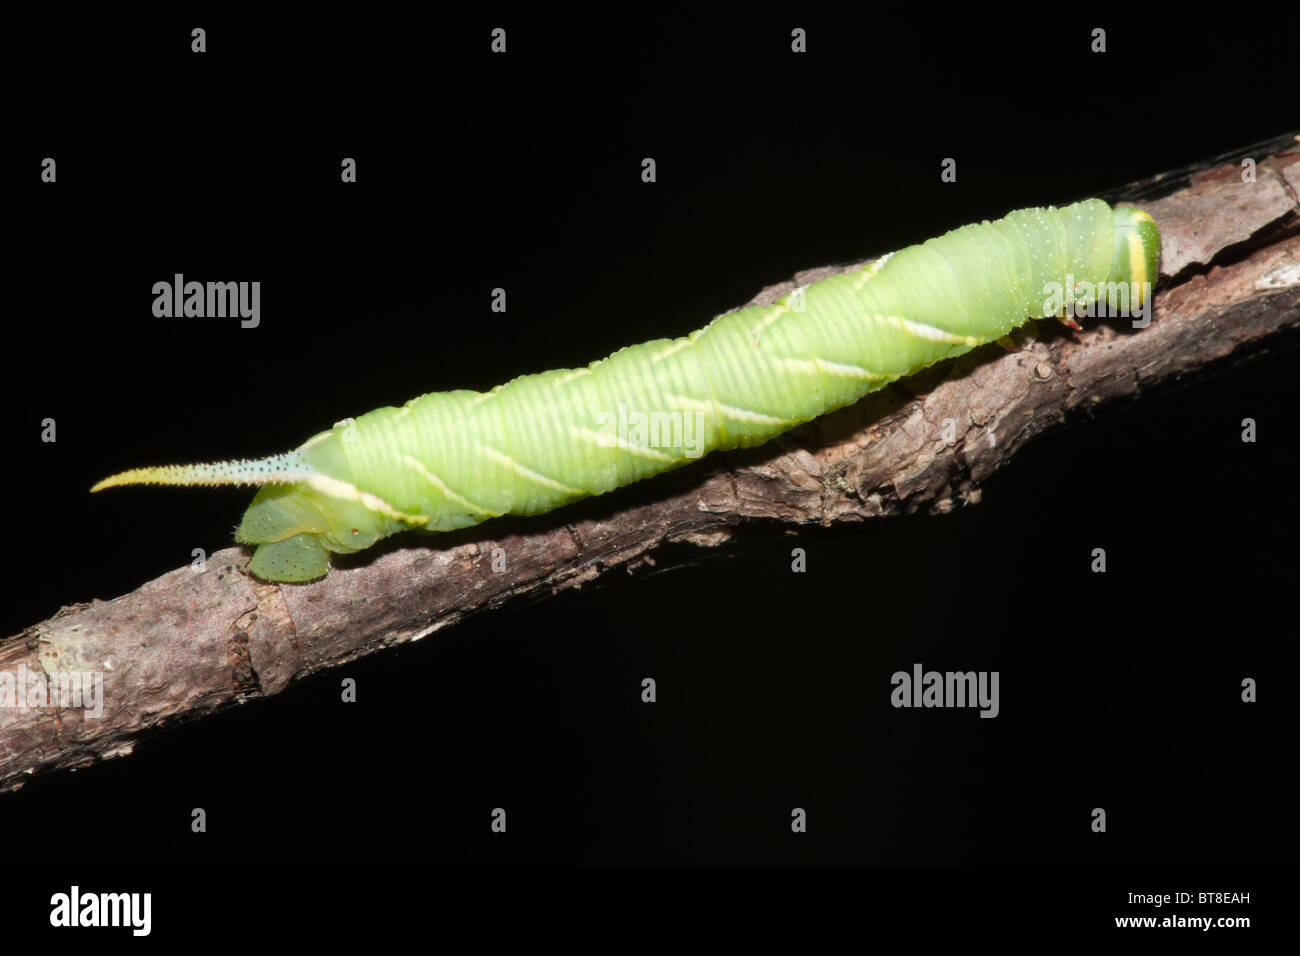 Twin-spotted Sphinx Moth (Smerinthus jamaicensis) caterpillar (larva) on a branch - Stock Image